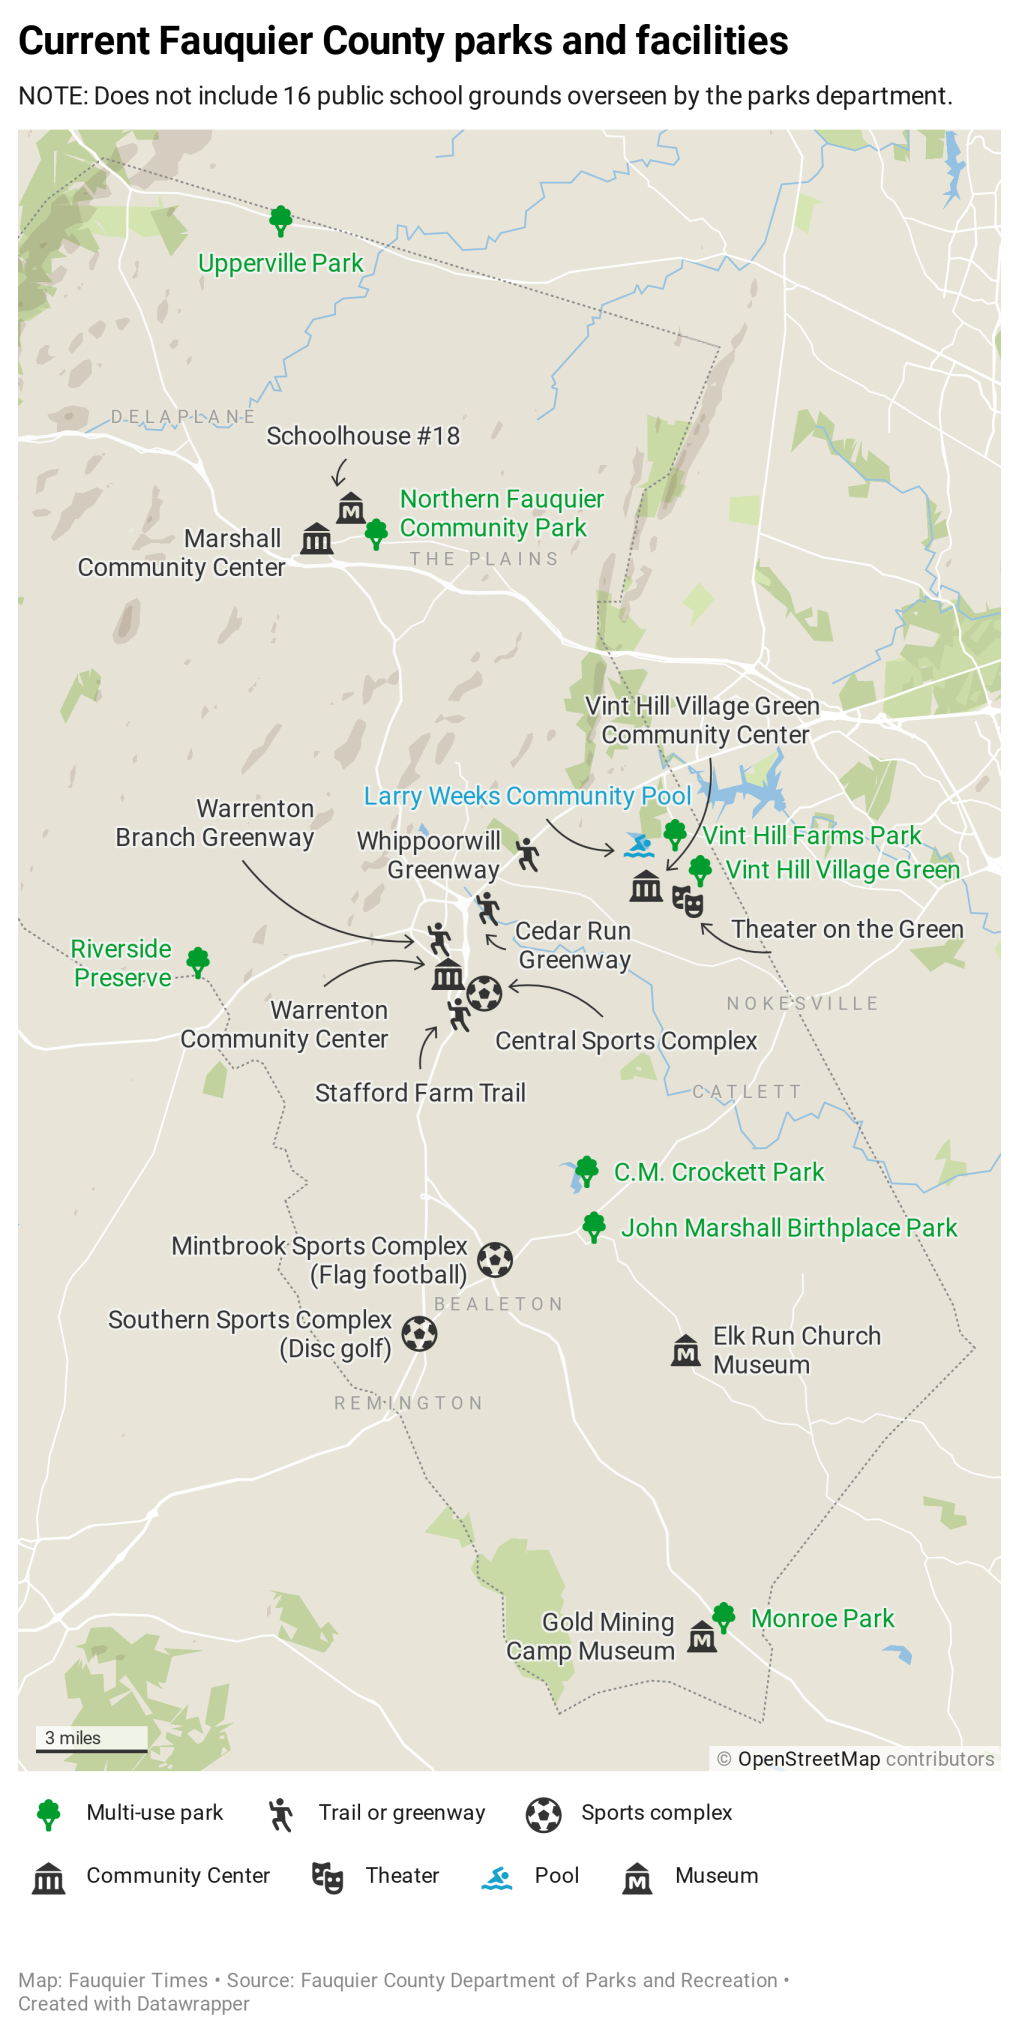 photo_ft_news_parks and rec map_20210210.png